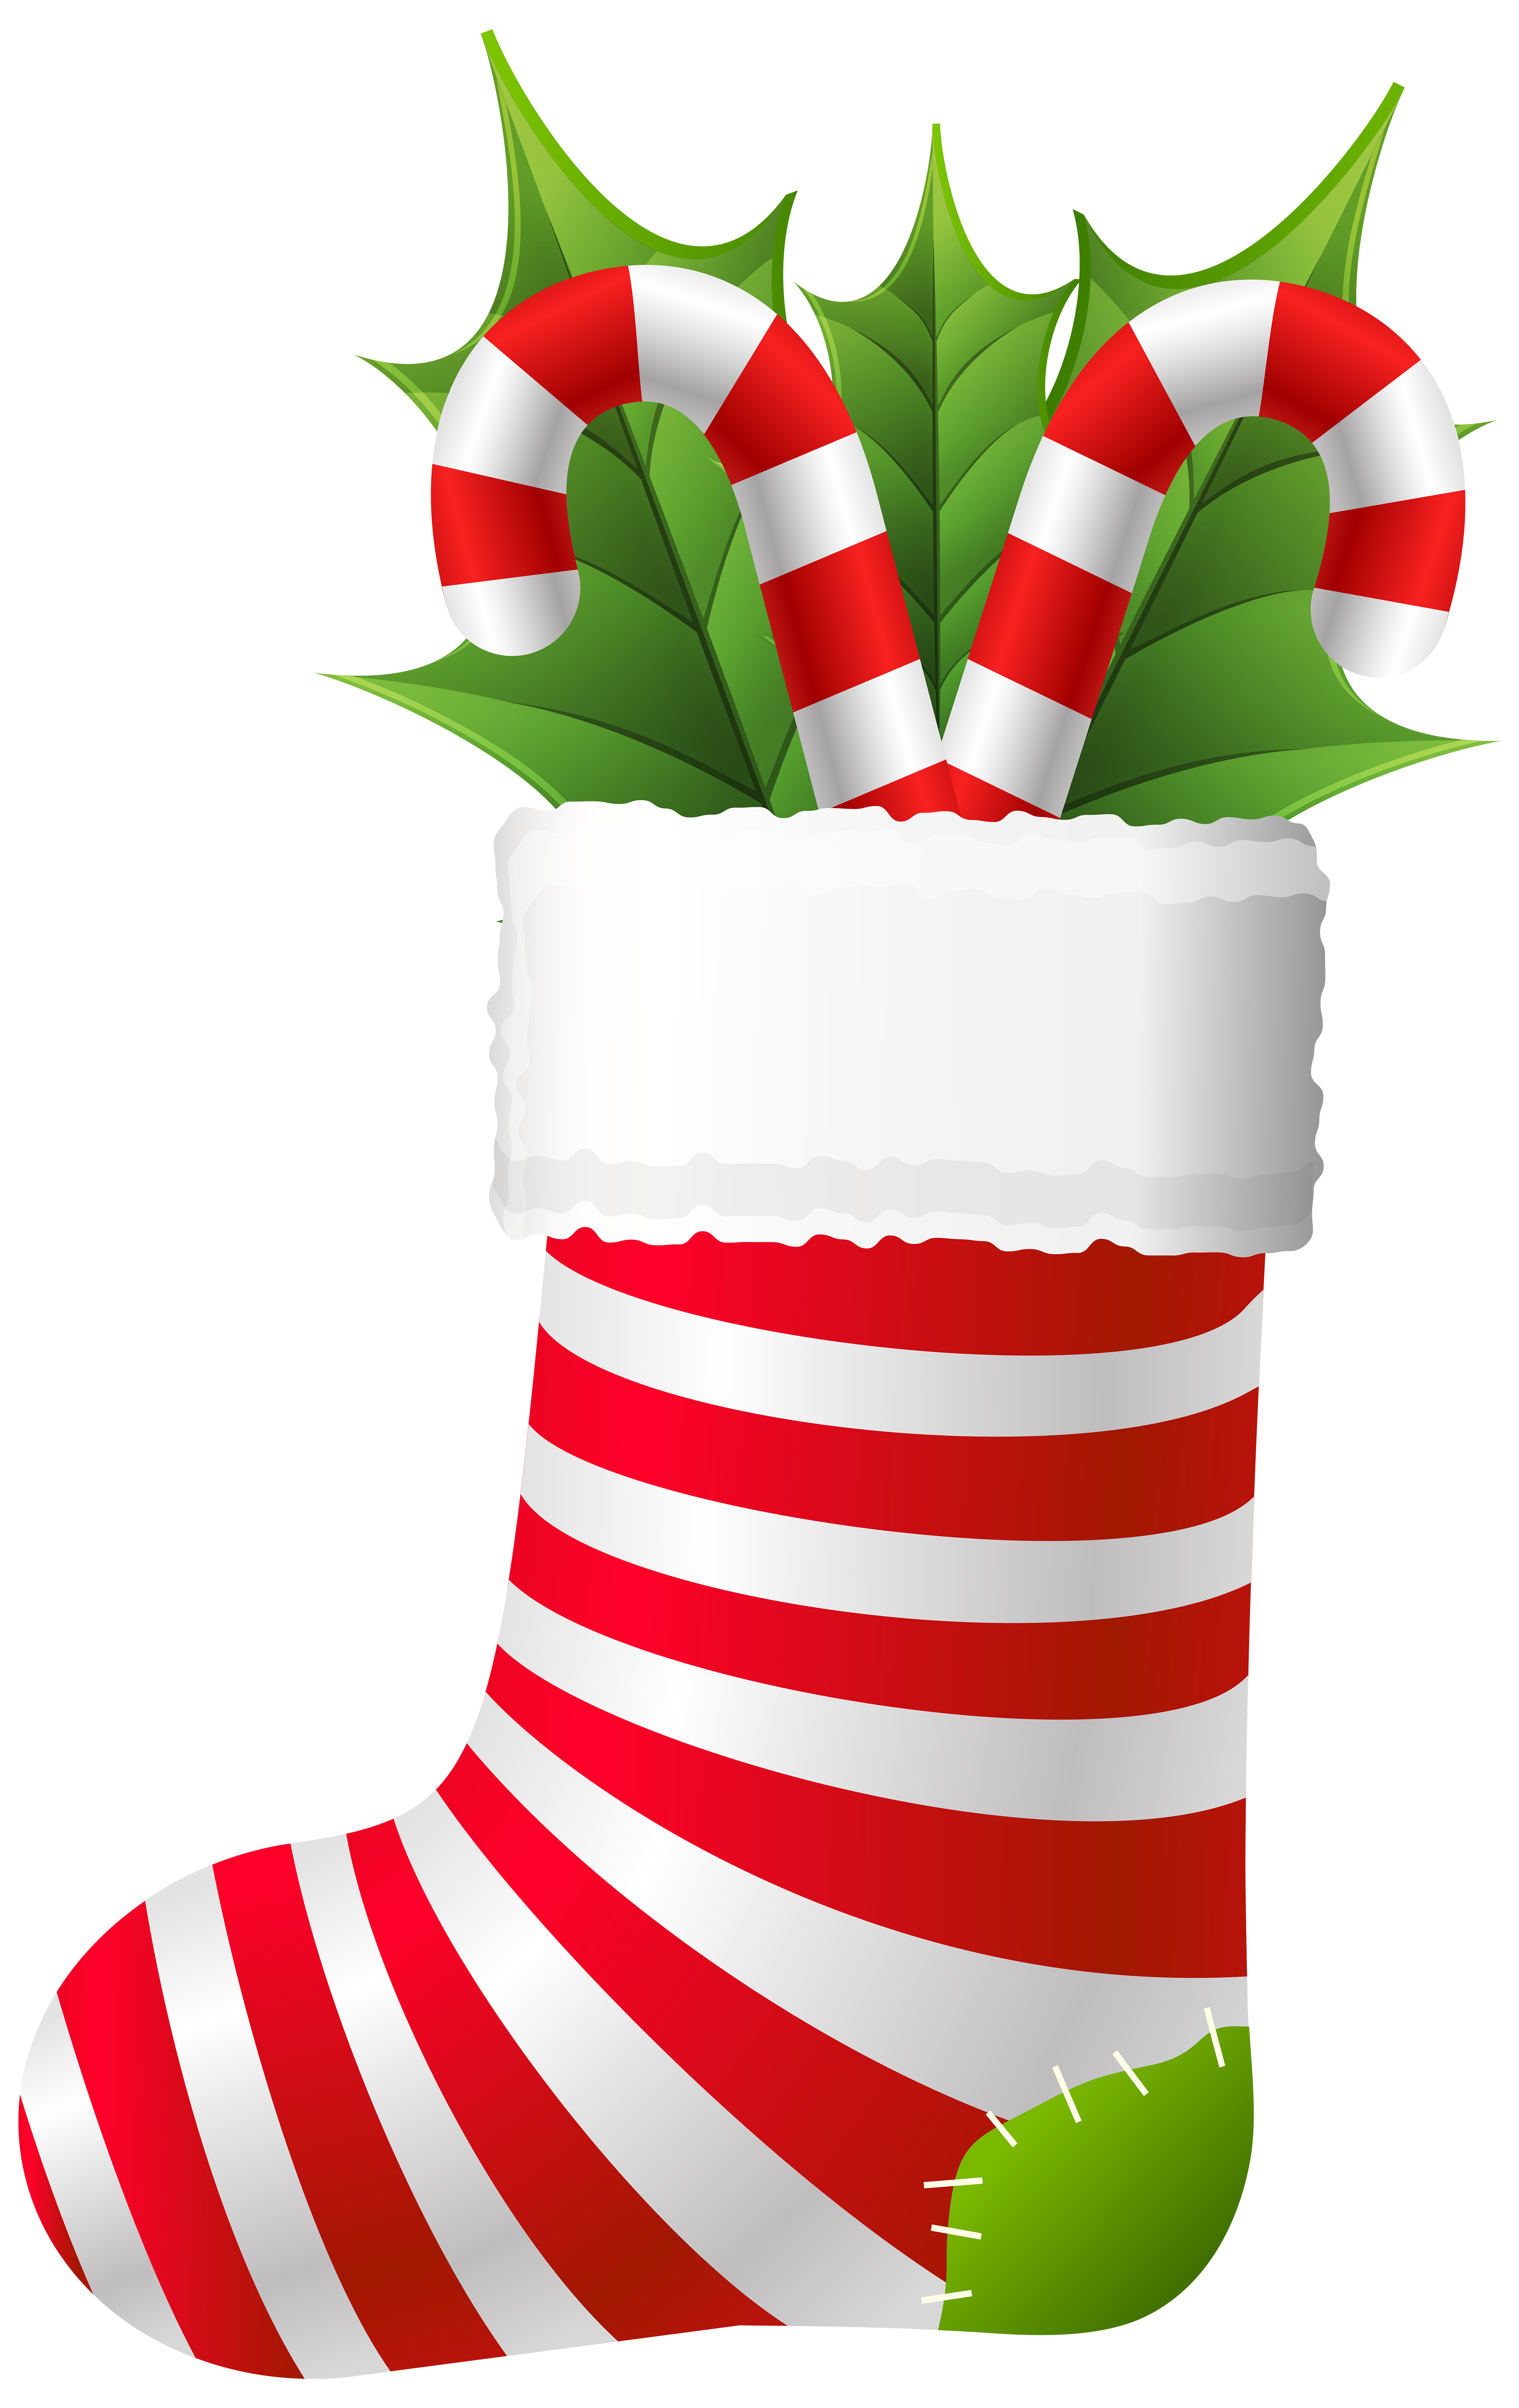 Christmas stocking clipart images picture free library Christmas Stocking with Candy Canes PNG Clip Art | Gallery ... picture free library